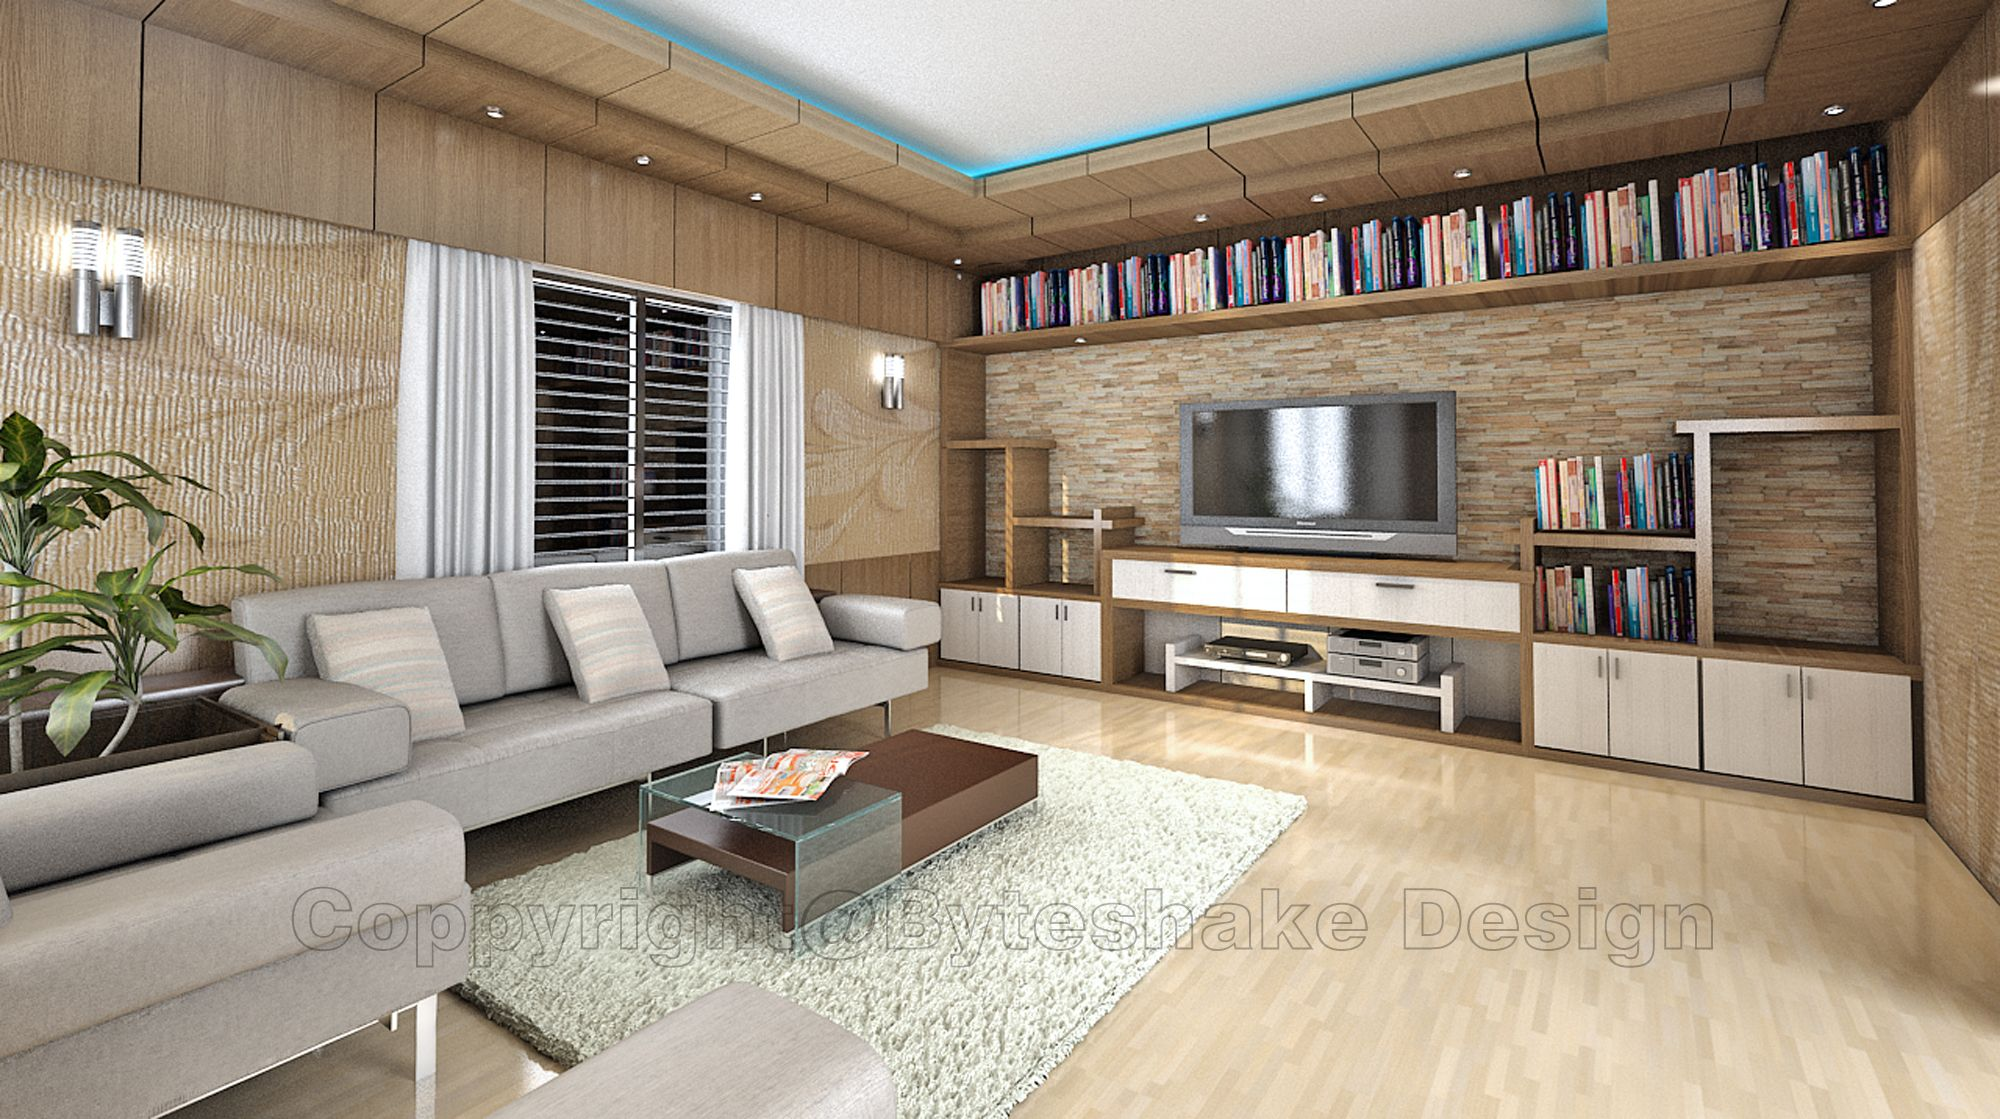 Best interior design company in bangladesh for Bangladeshi interior design room decorating